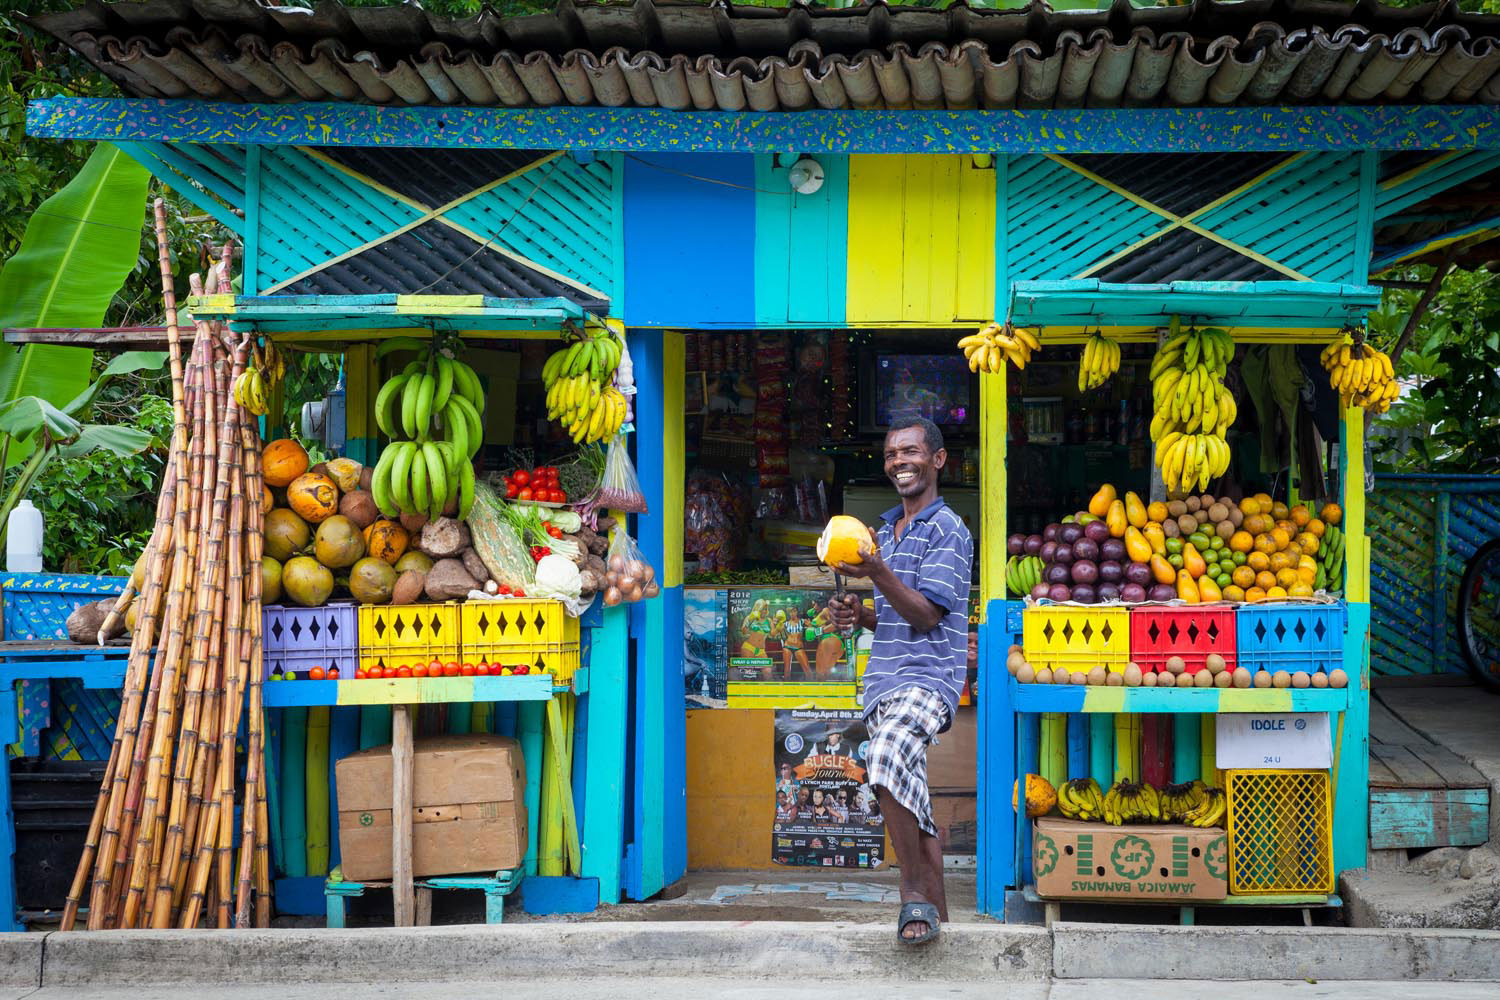 Everything irie in the Jamaican countryside. Jon Arnold Images Ltd/Alamy Stock Photo